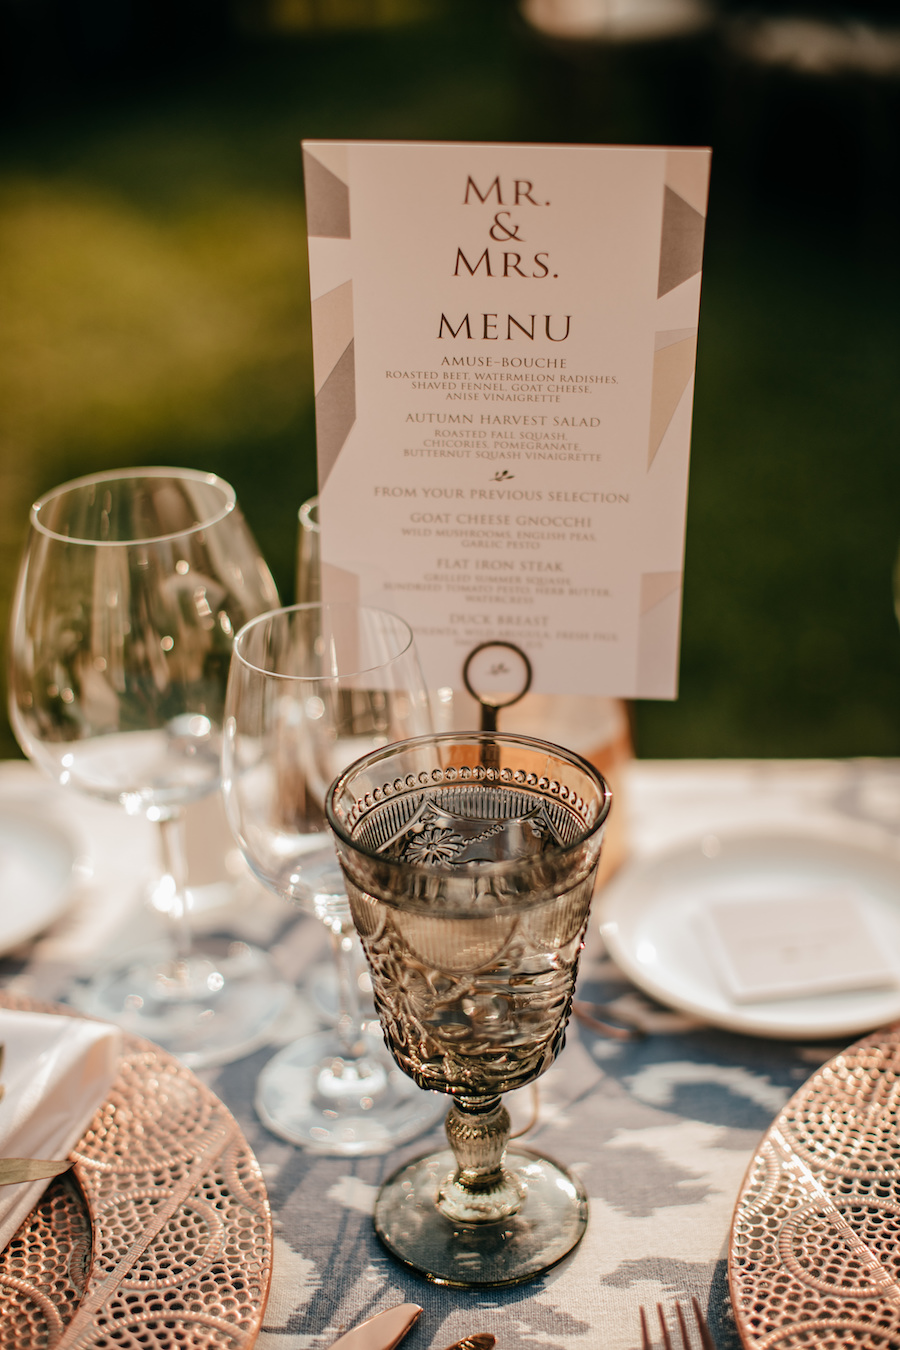 Jennifer and Jared's Chic Copper-Toned Wedding at Chateau St. Jean21.jpg